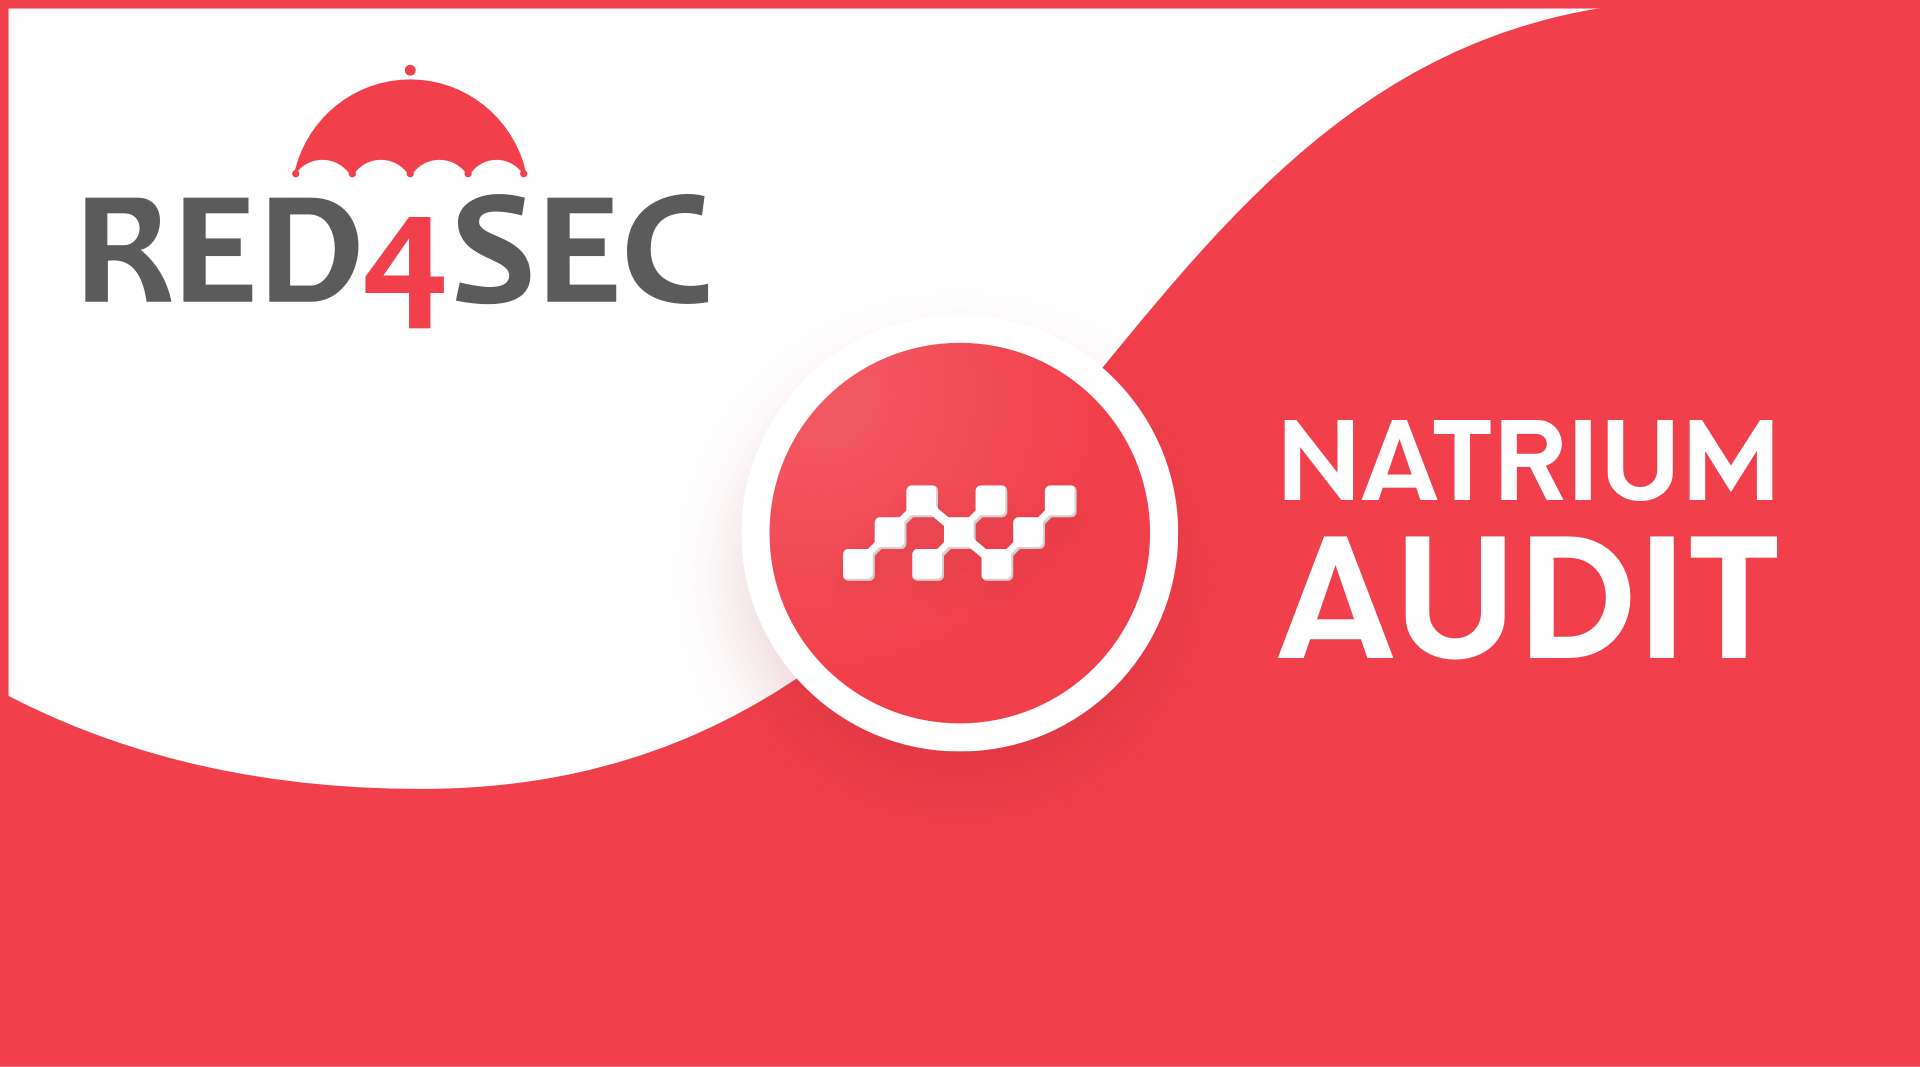 Natrium audited by Red4Sec — No critical vulnerabilities.